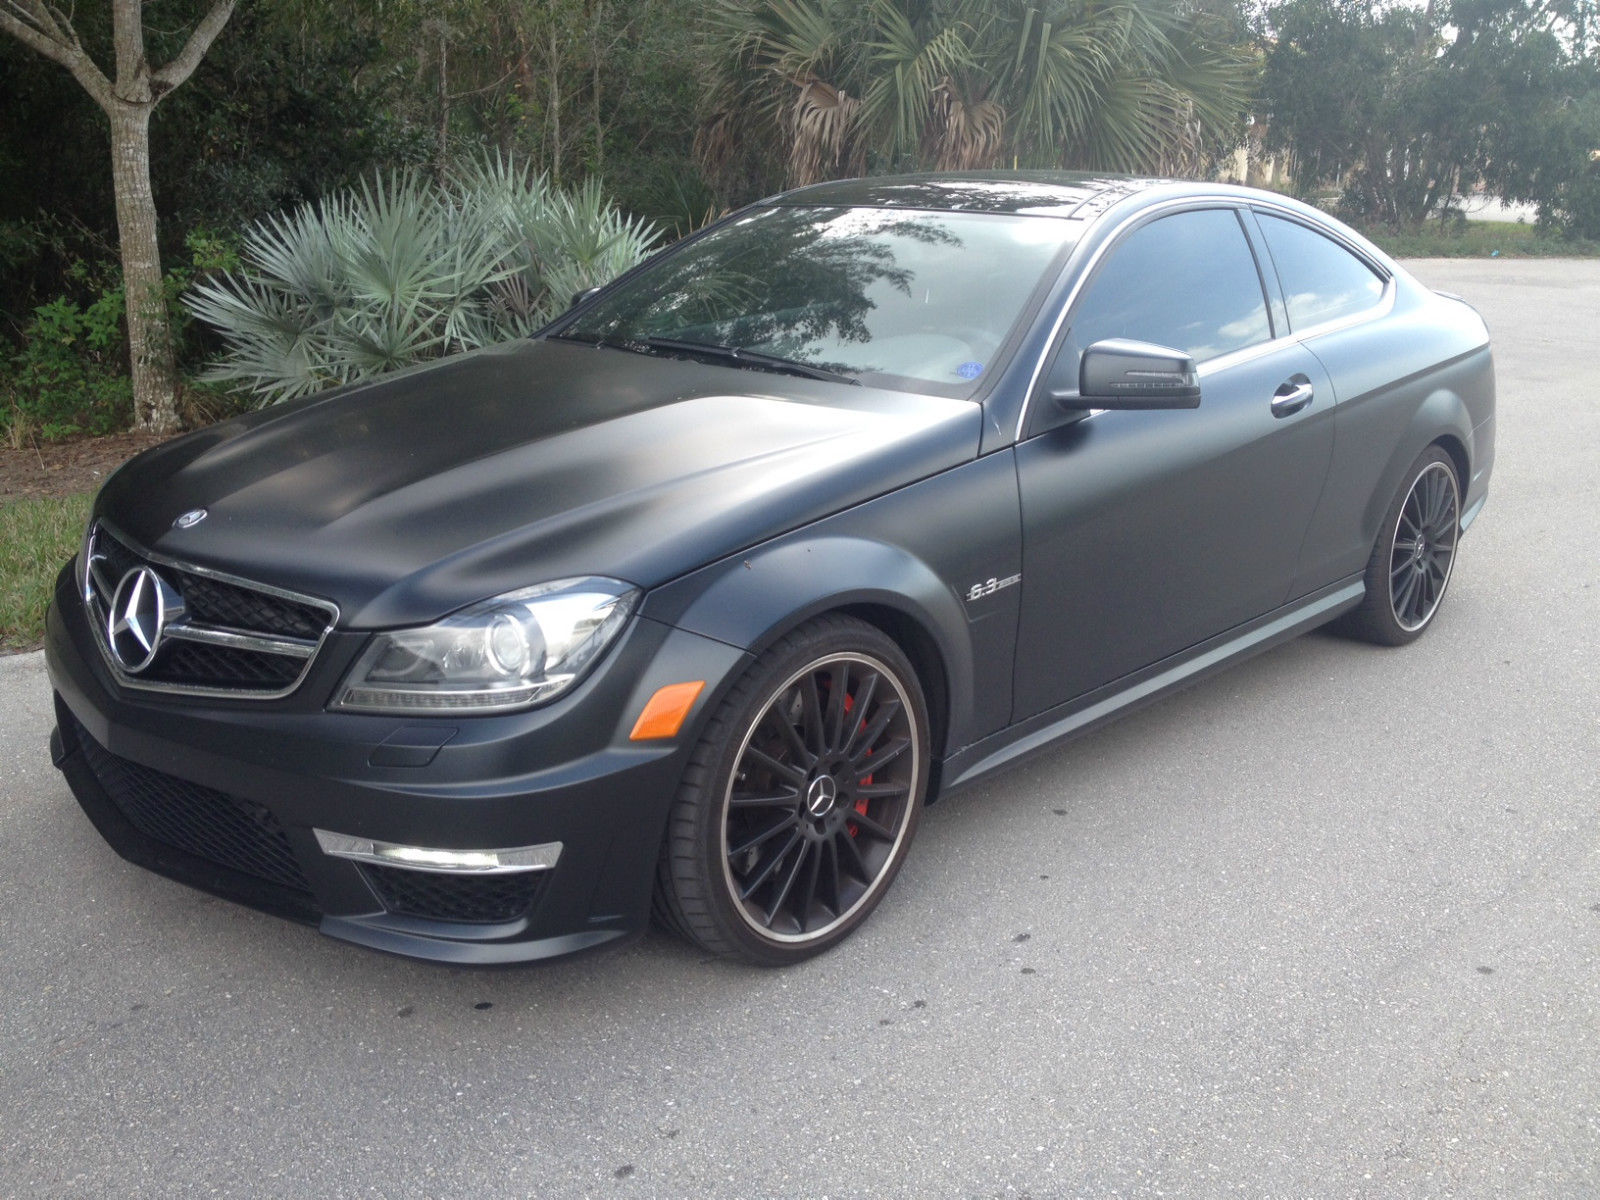 2012 mercedes benz c63 amg coupe with p88 edition 1 package for sale. Black Bedroom Furniture Sets. Home Design Ideas